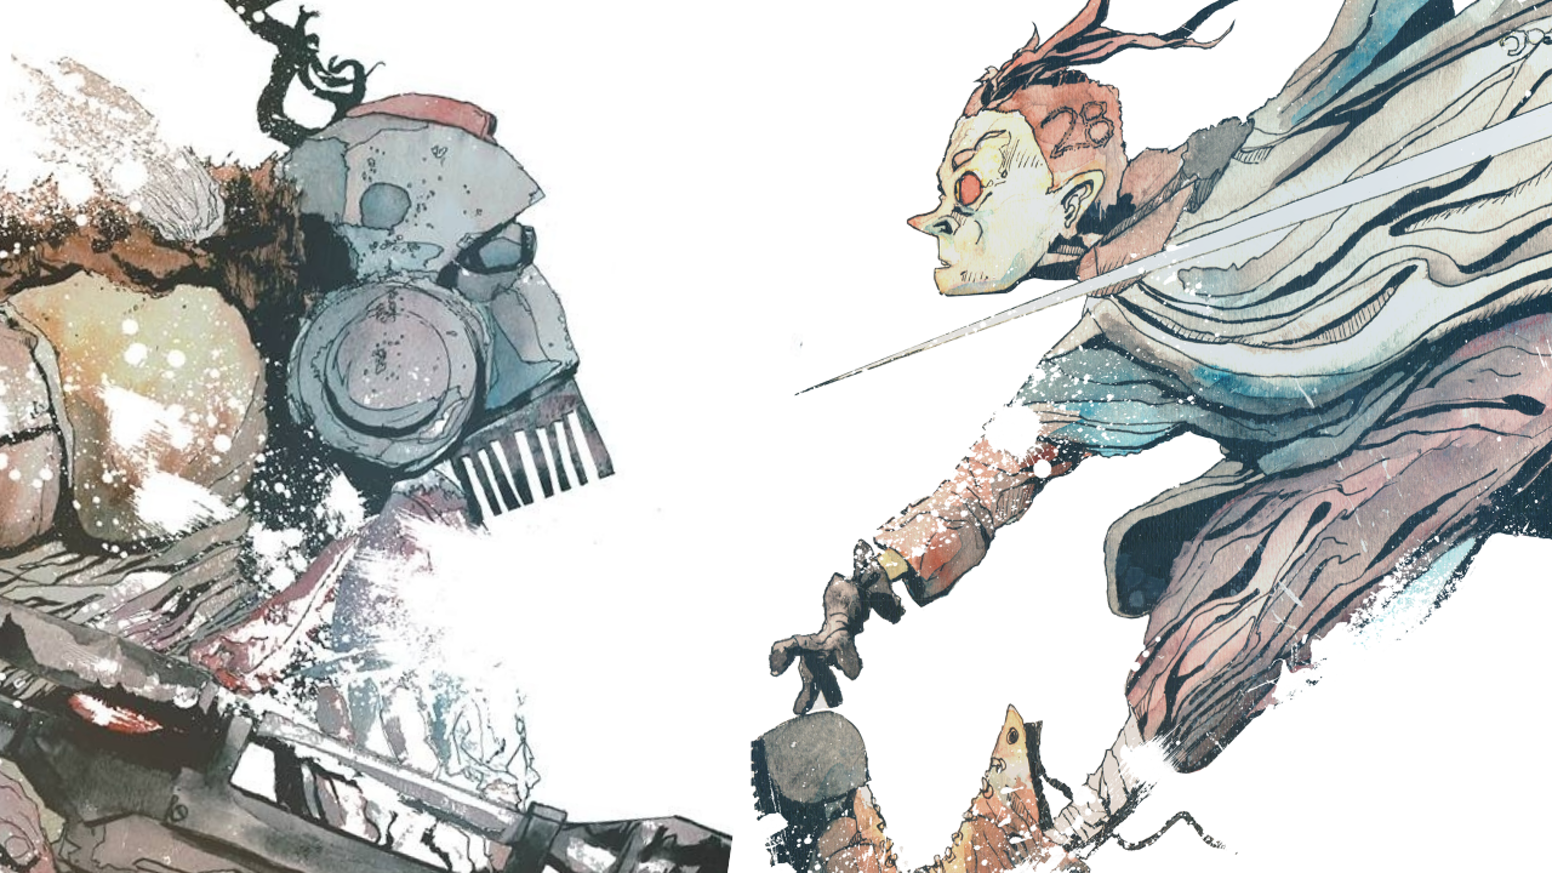 Glaxial is Fallout meet Borderlands in a world 100% made of Snow, Ice and Weirdos. Be ready to get your heart frozen.